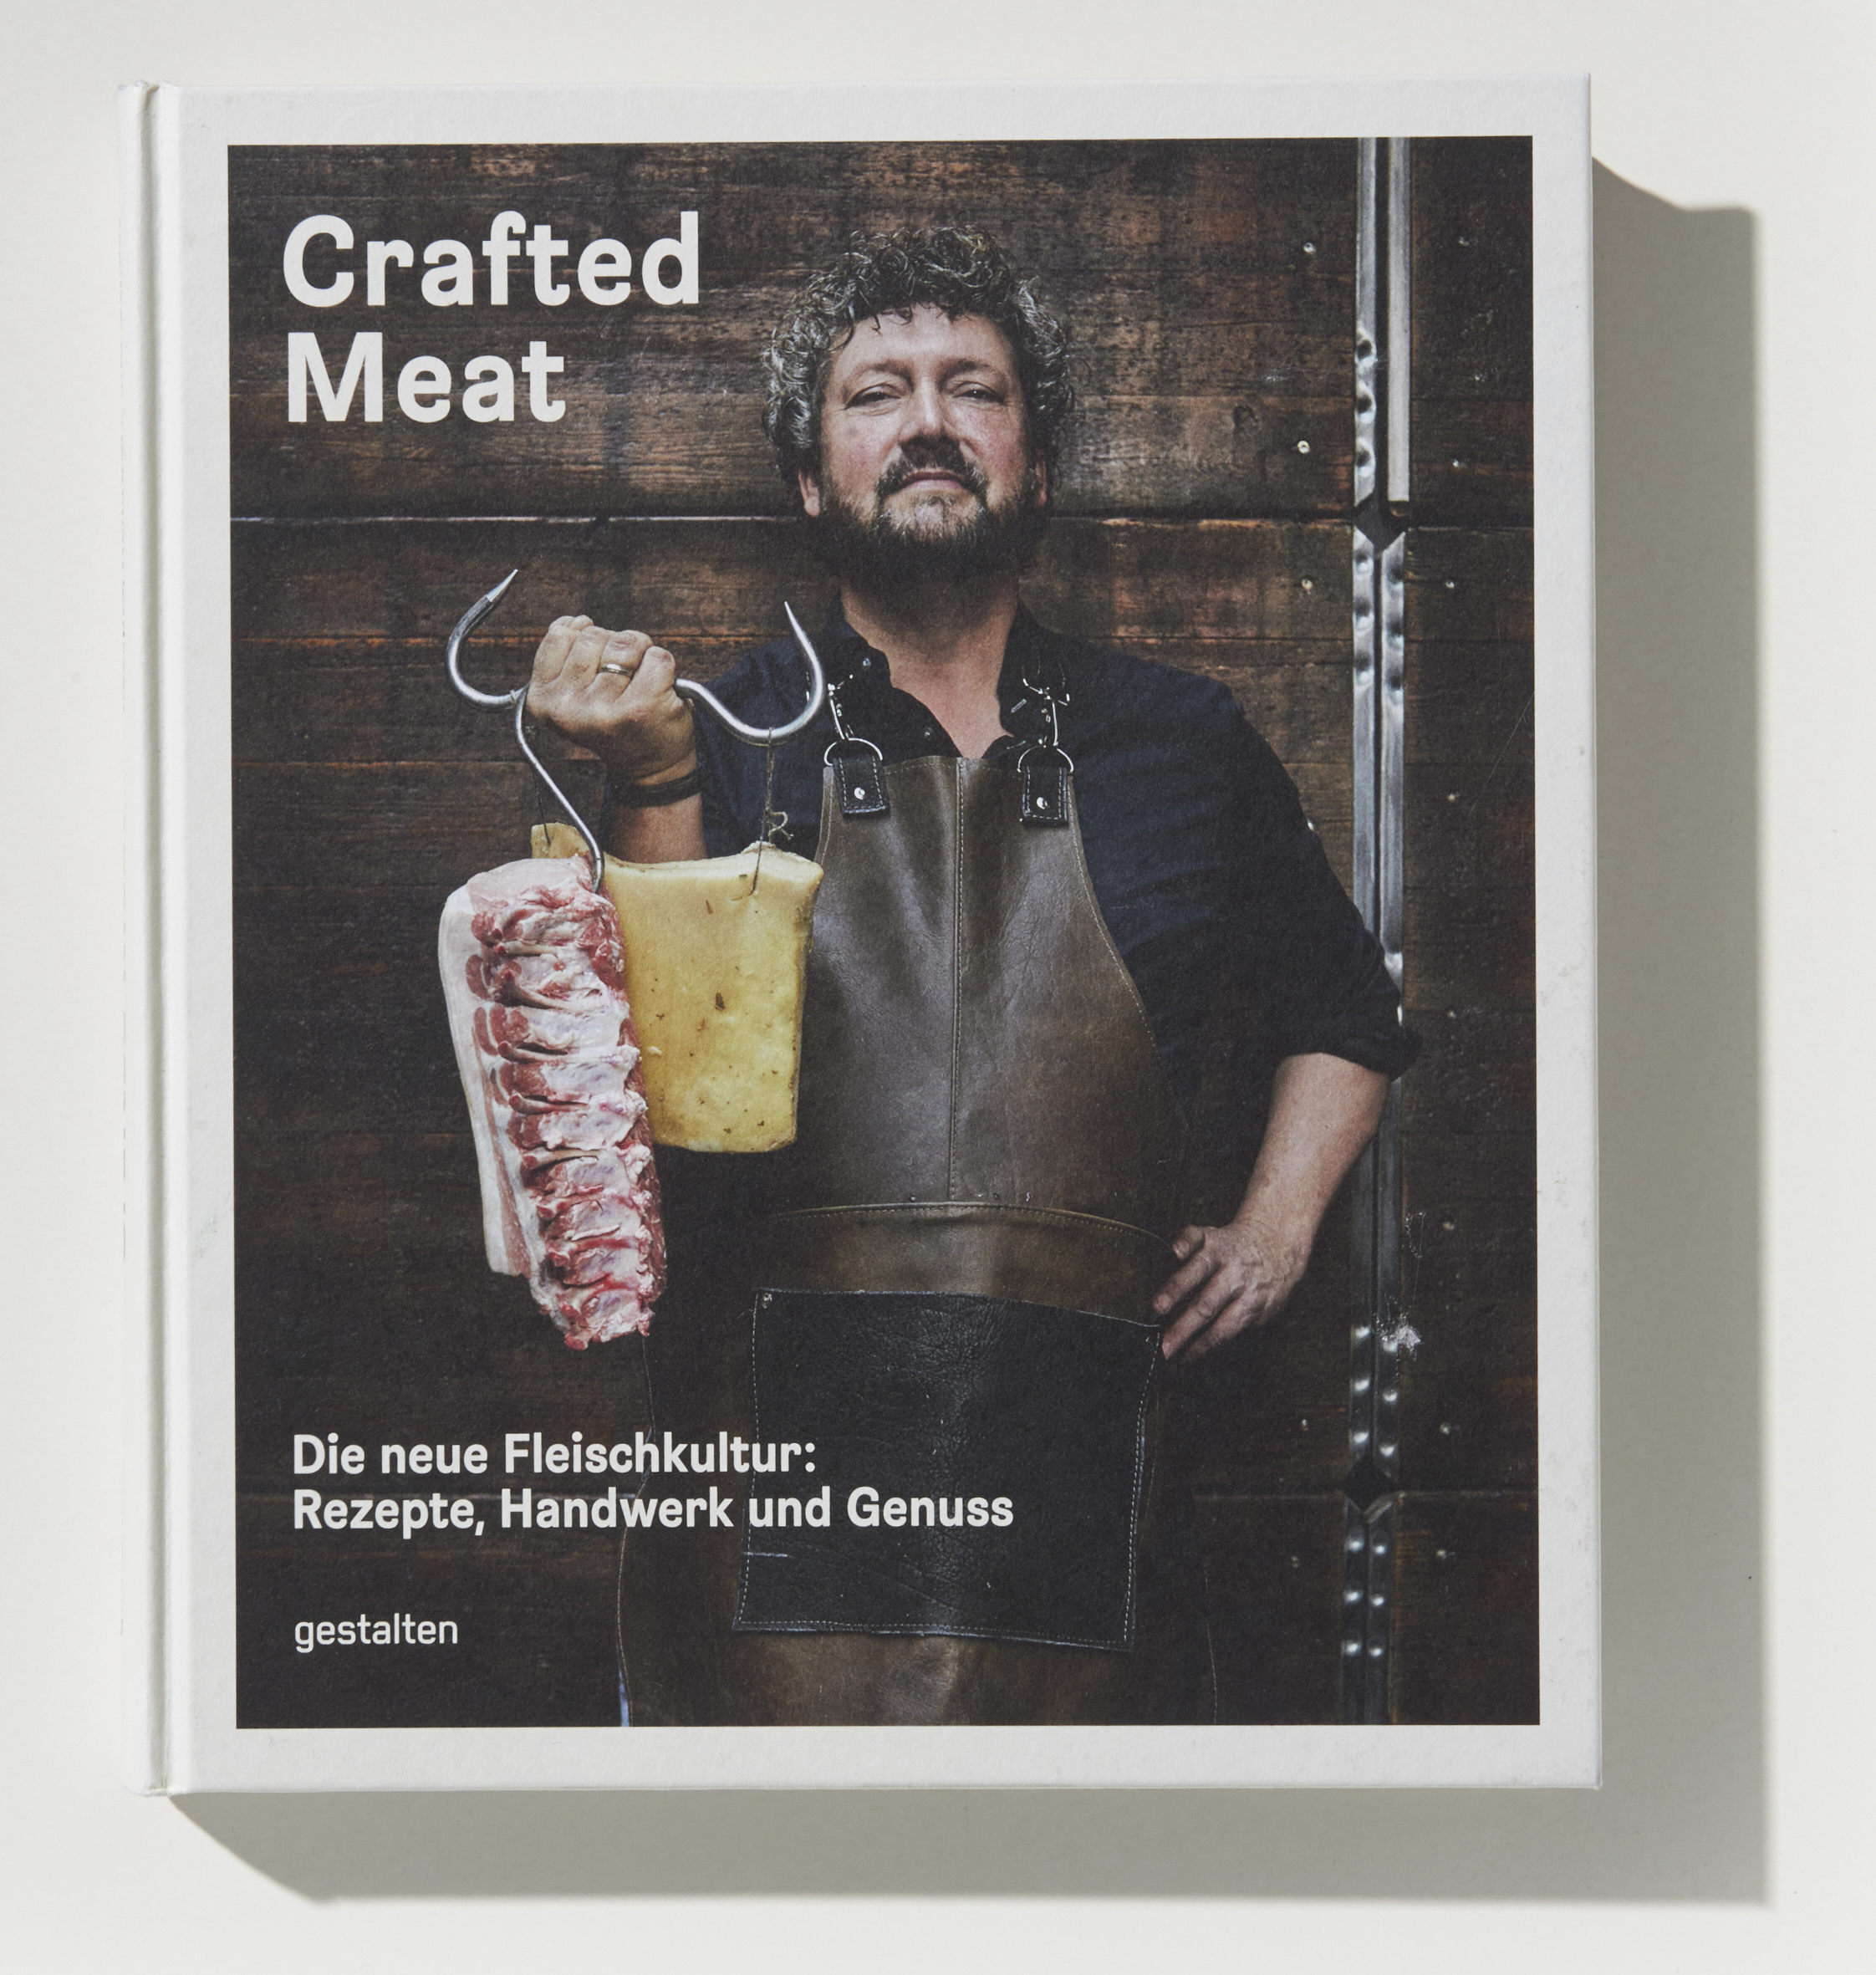 Crafted Meat Cover.jpg